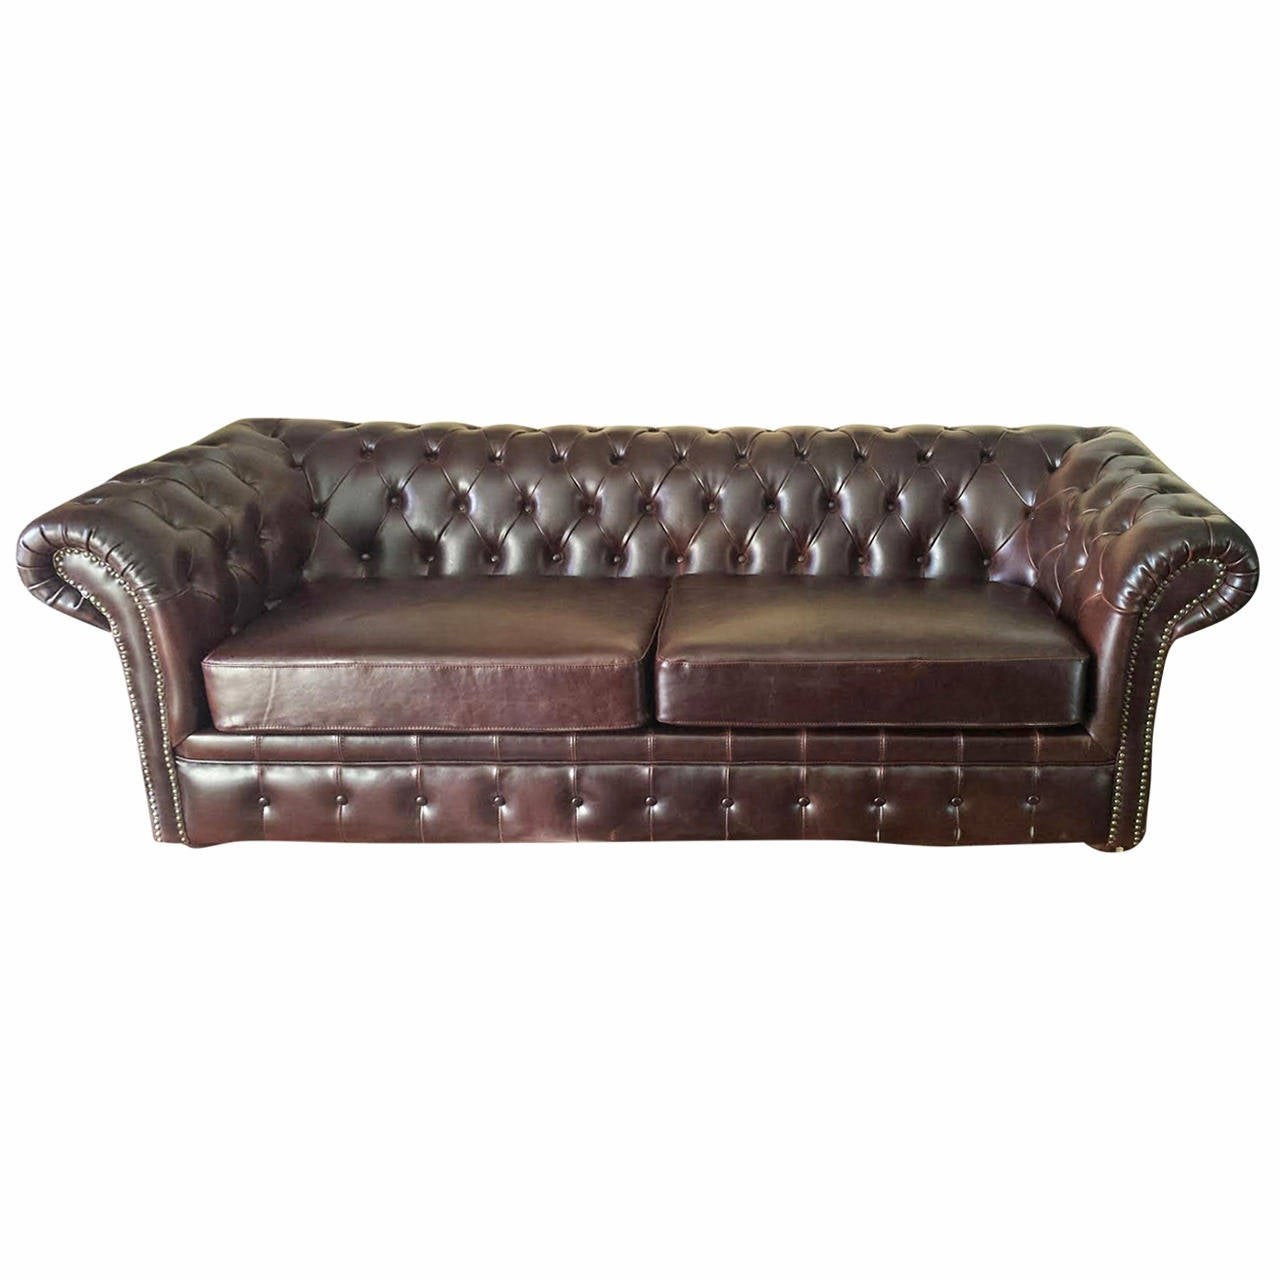 Chesterfield Leather Sofa In Brown At 1stdibs